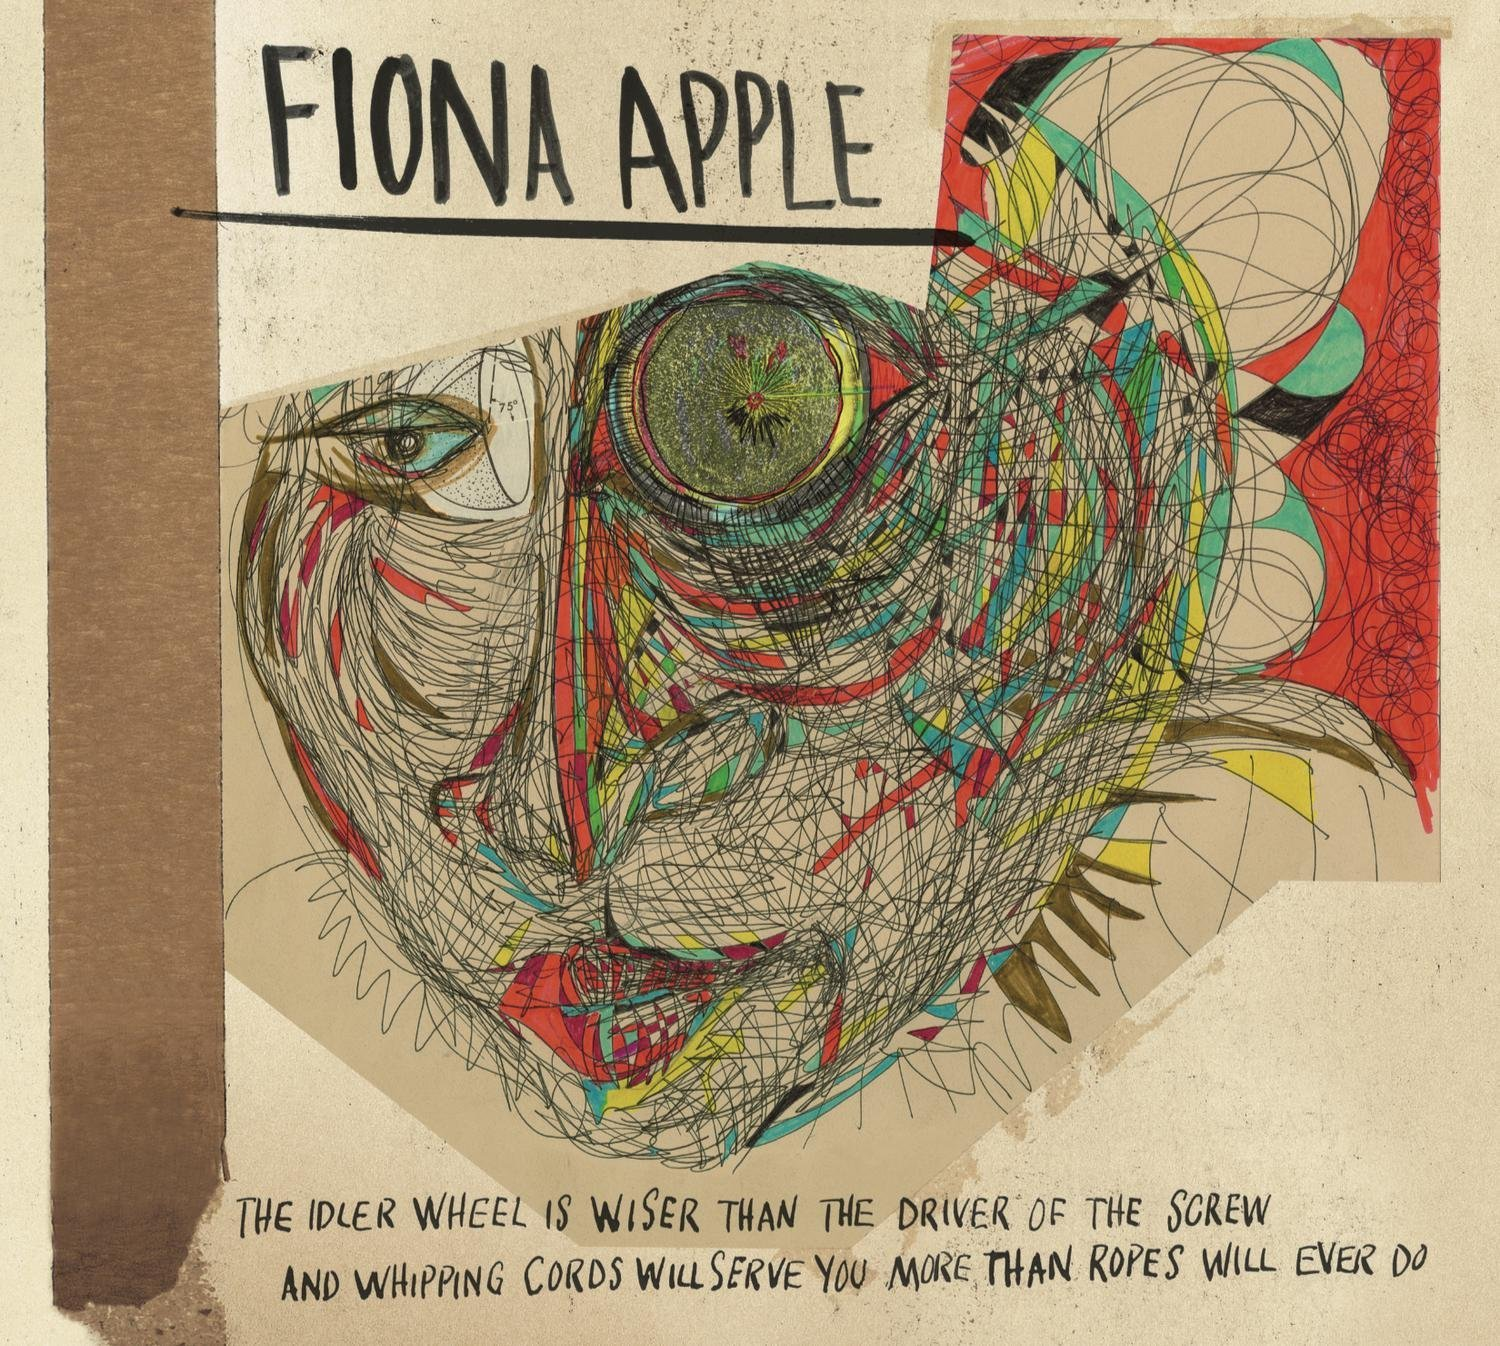 Fiona Apple, The Idler Wheel Is Wiser Than the Driver of the Screw, and Whipping Cords Will Serve You More Than Ropes Will Ever Do